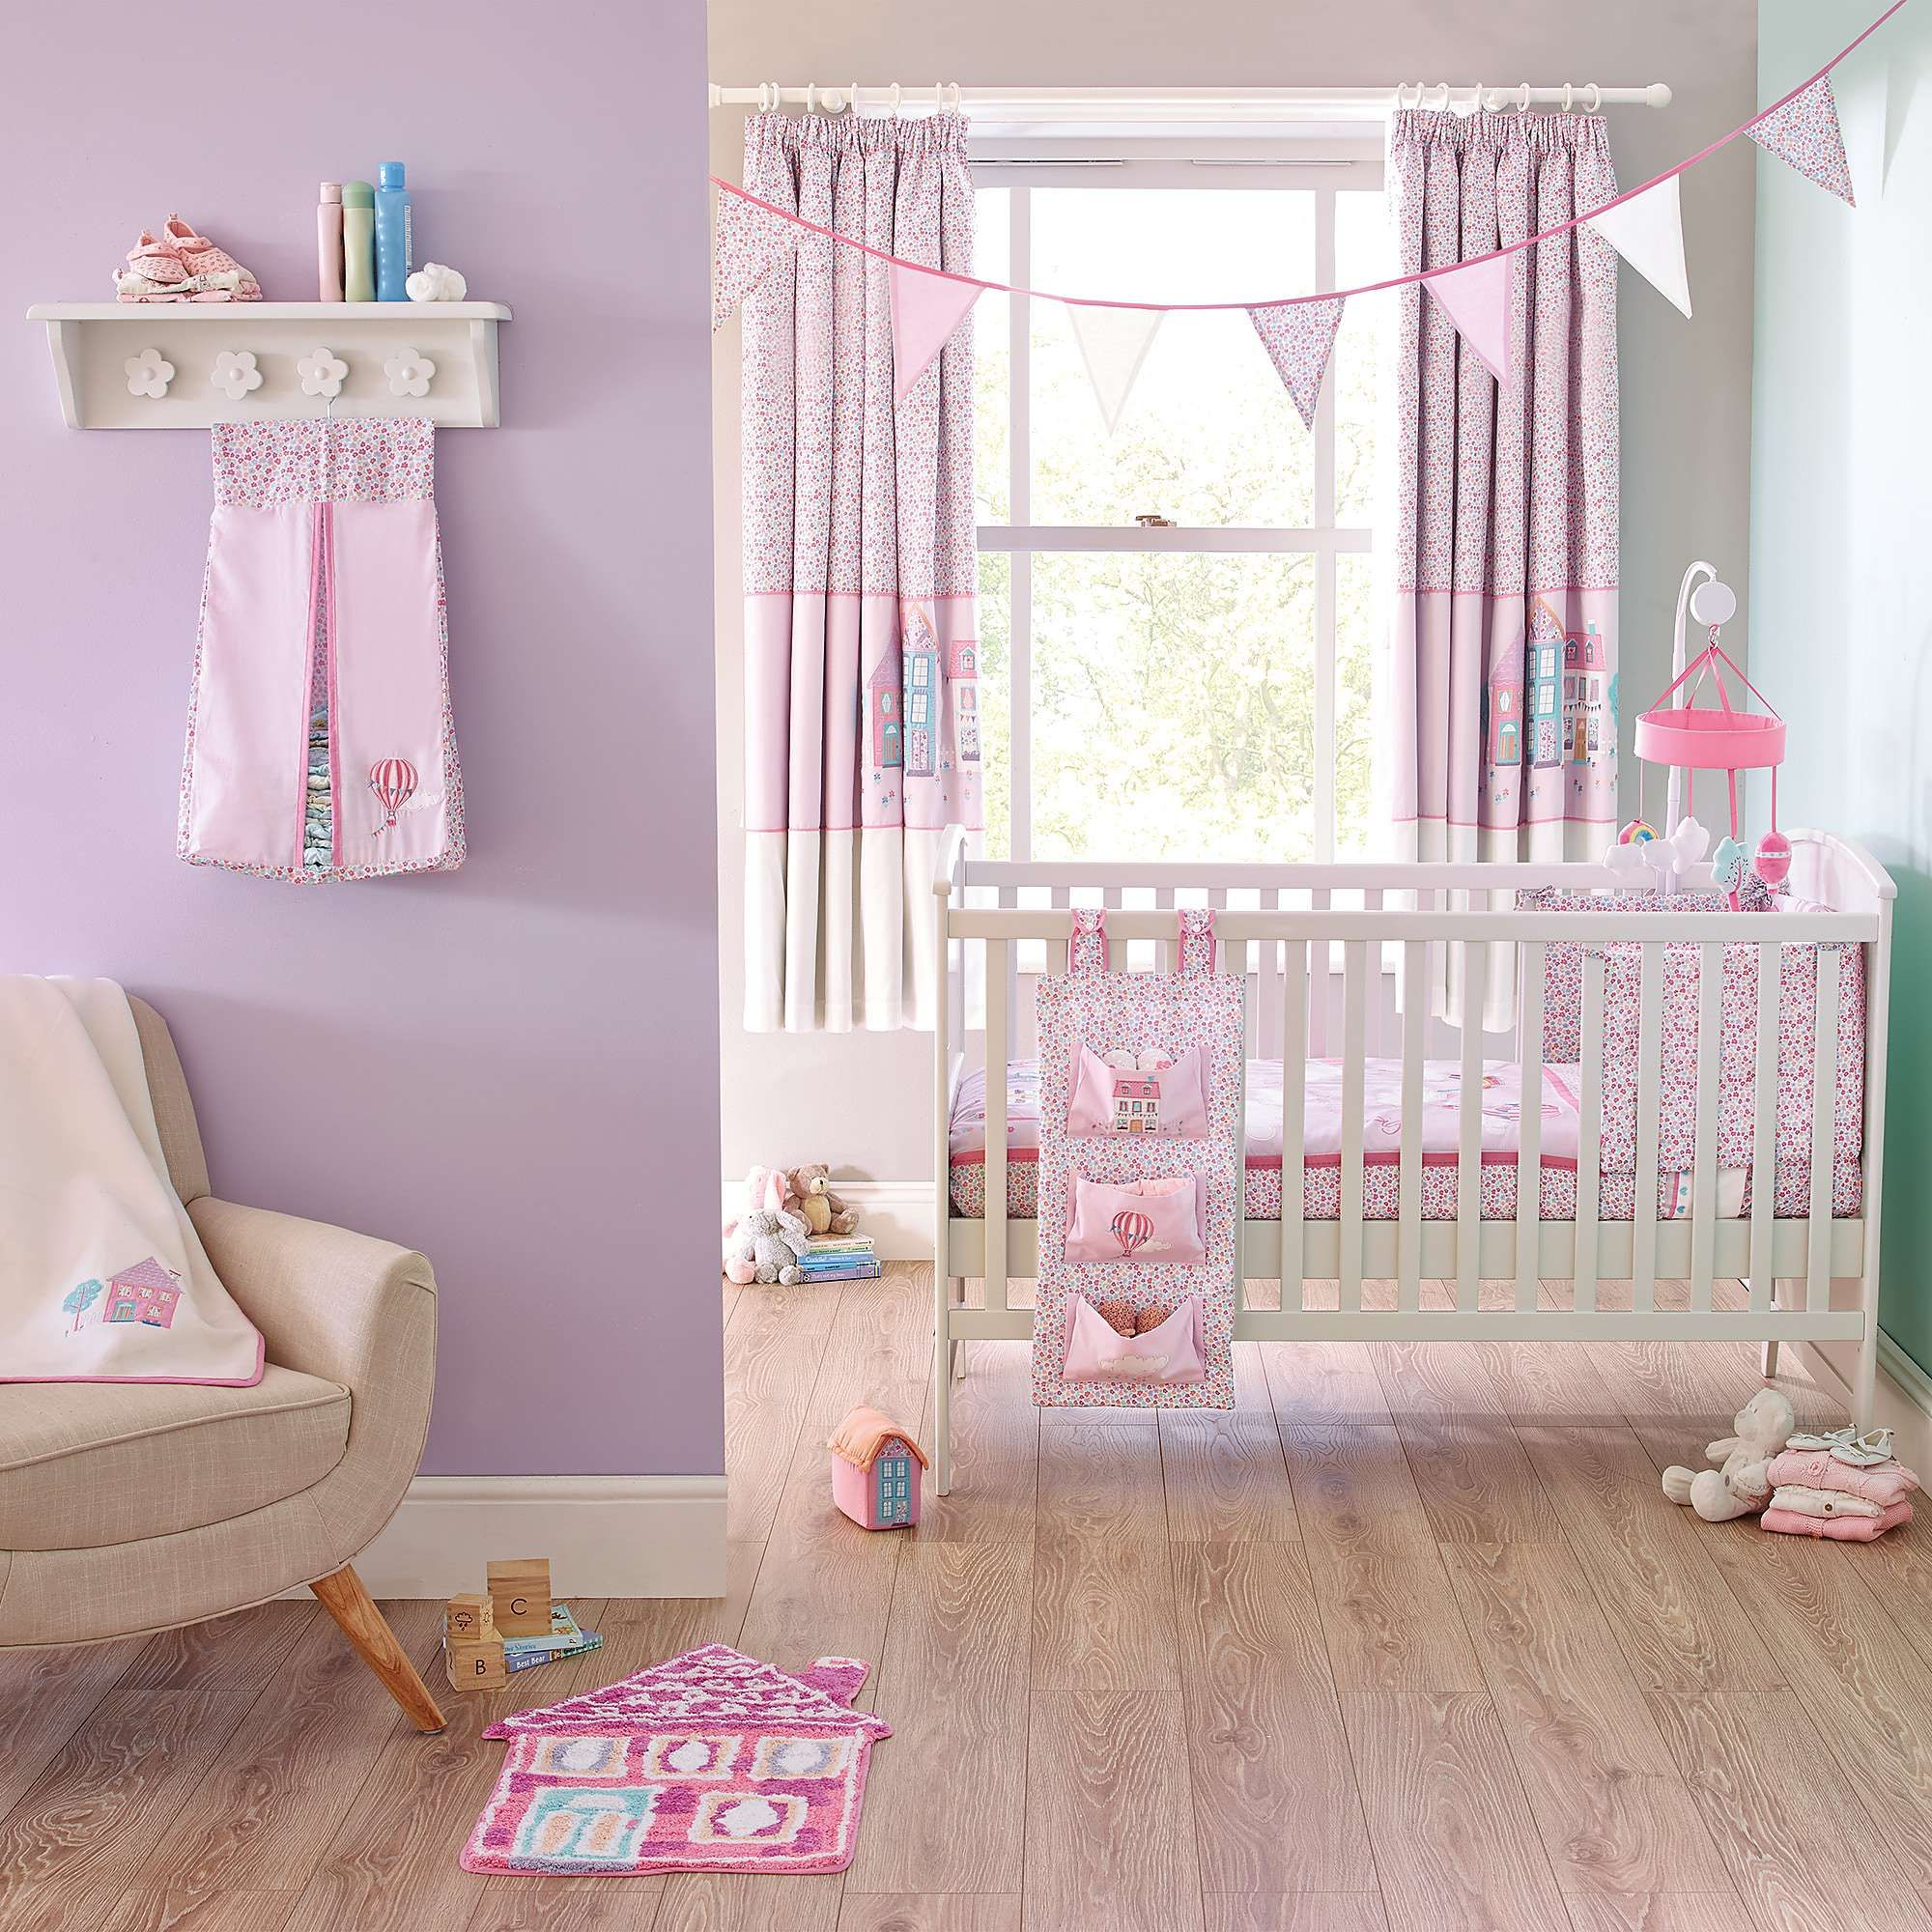 design baby home window light curtains honoroak the uk blue net gopelling curtain nursery blackout unique for bright